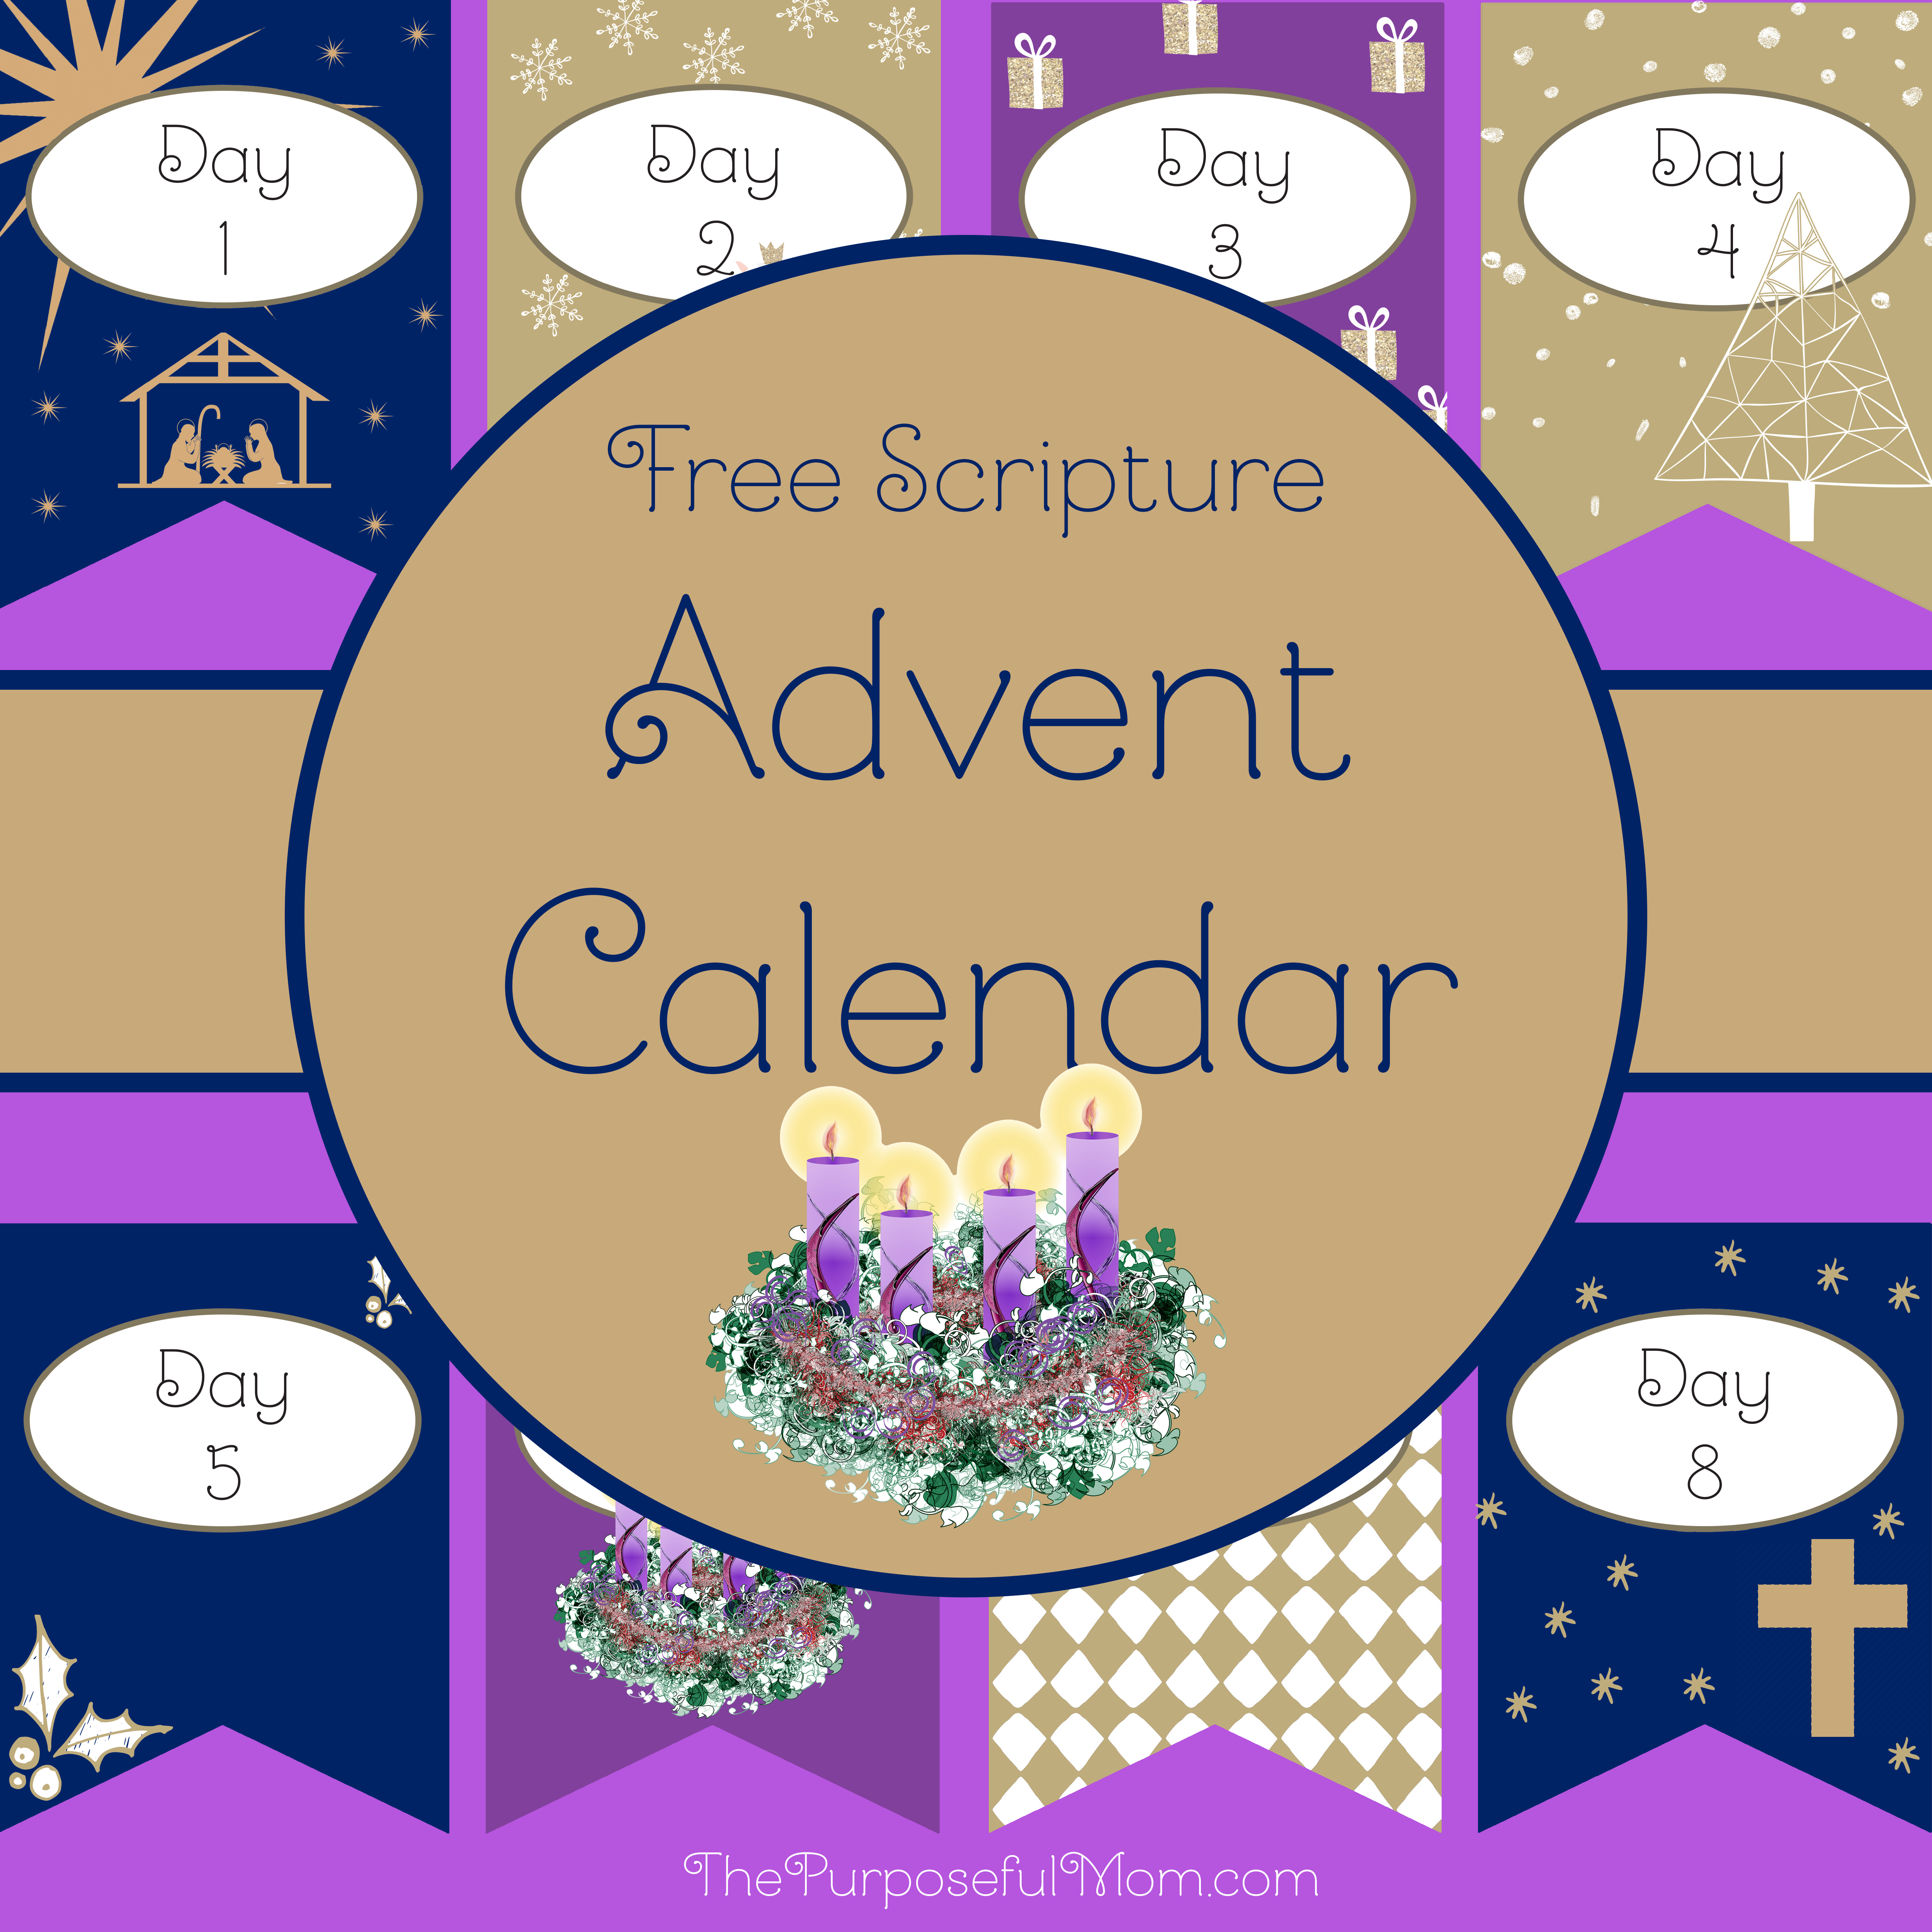 15 Bible Verses to Teach Your Children About Advent - The